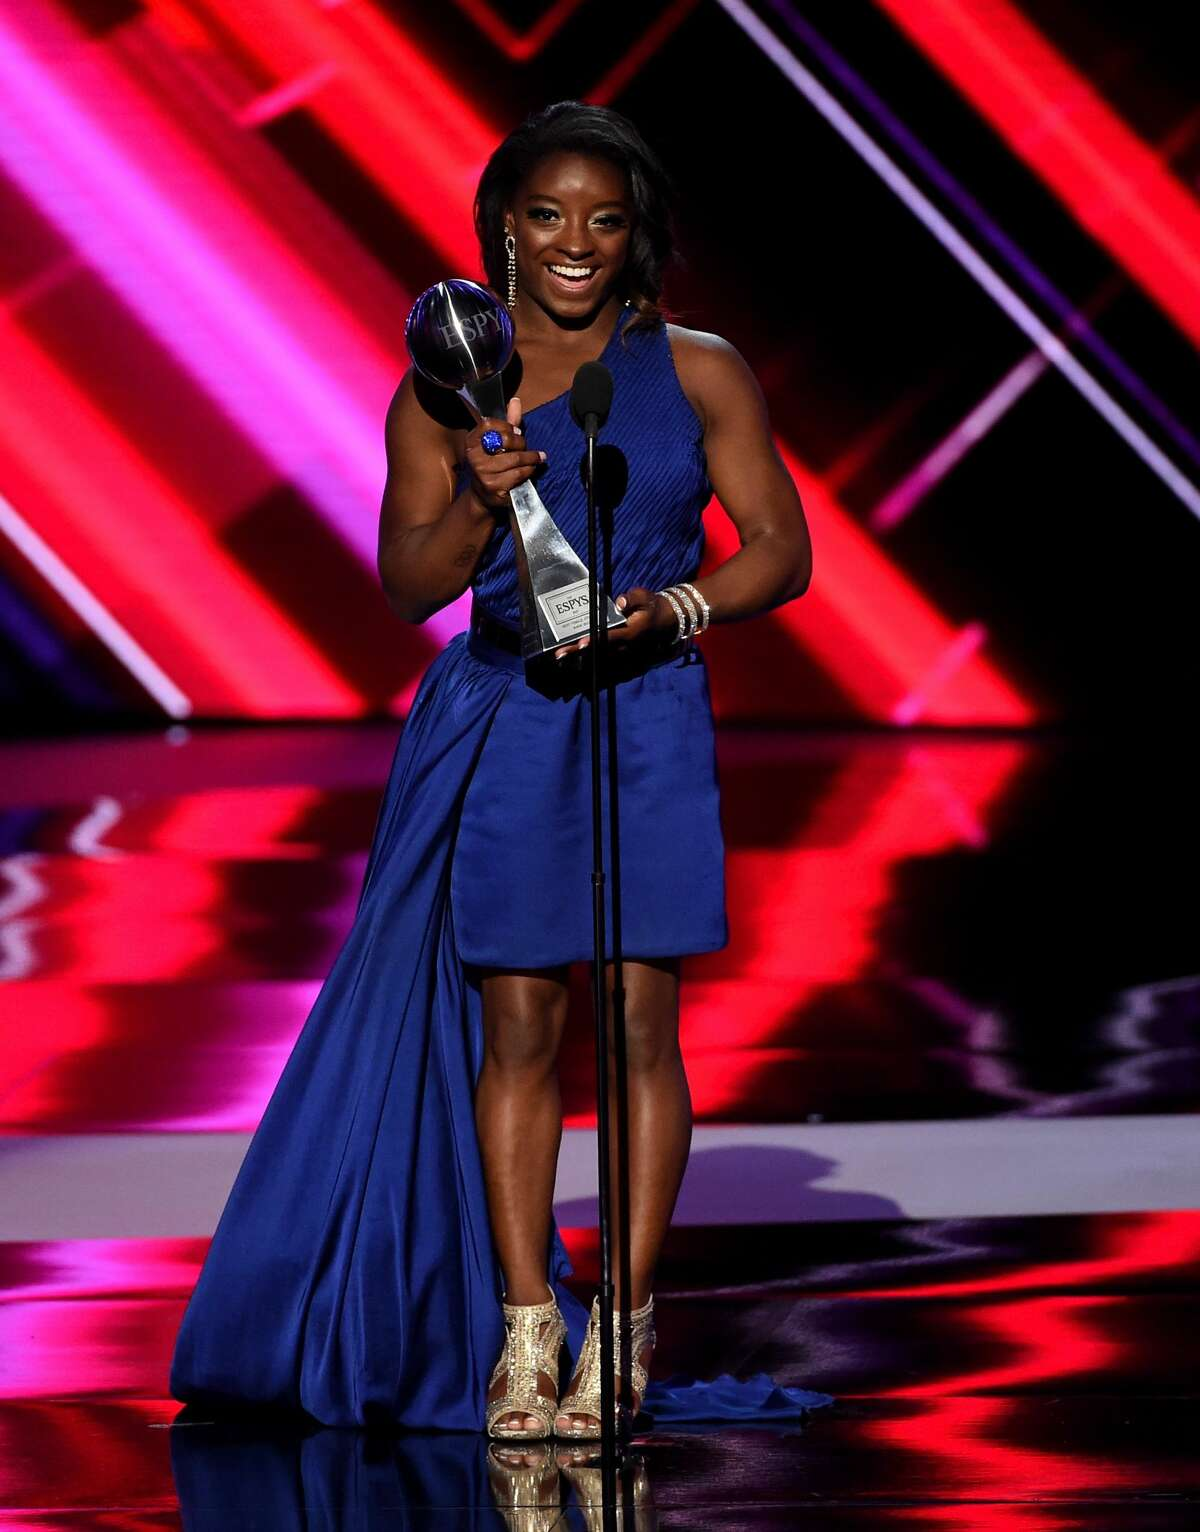 LOS ANGELES, CA - JULY 12: Olympic gymnast Simone Biles accepts the Best Female Athlete award onstage at The 2017 ESPYS at Microsoft Theater on July 12, 2017 in Los Angeles, California. (Photo by Kevin Winter/Getty Images)